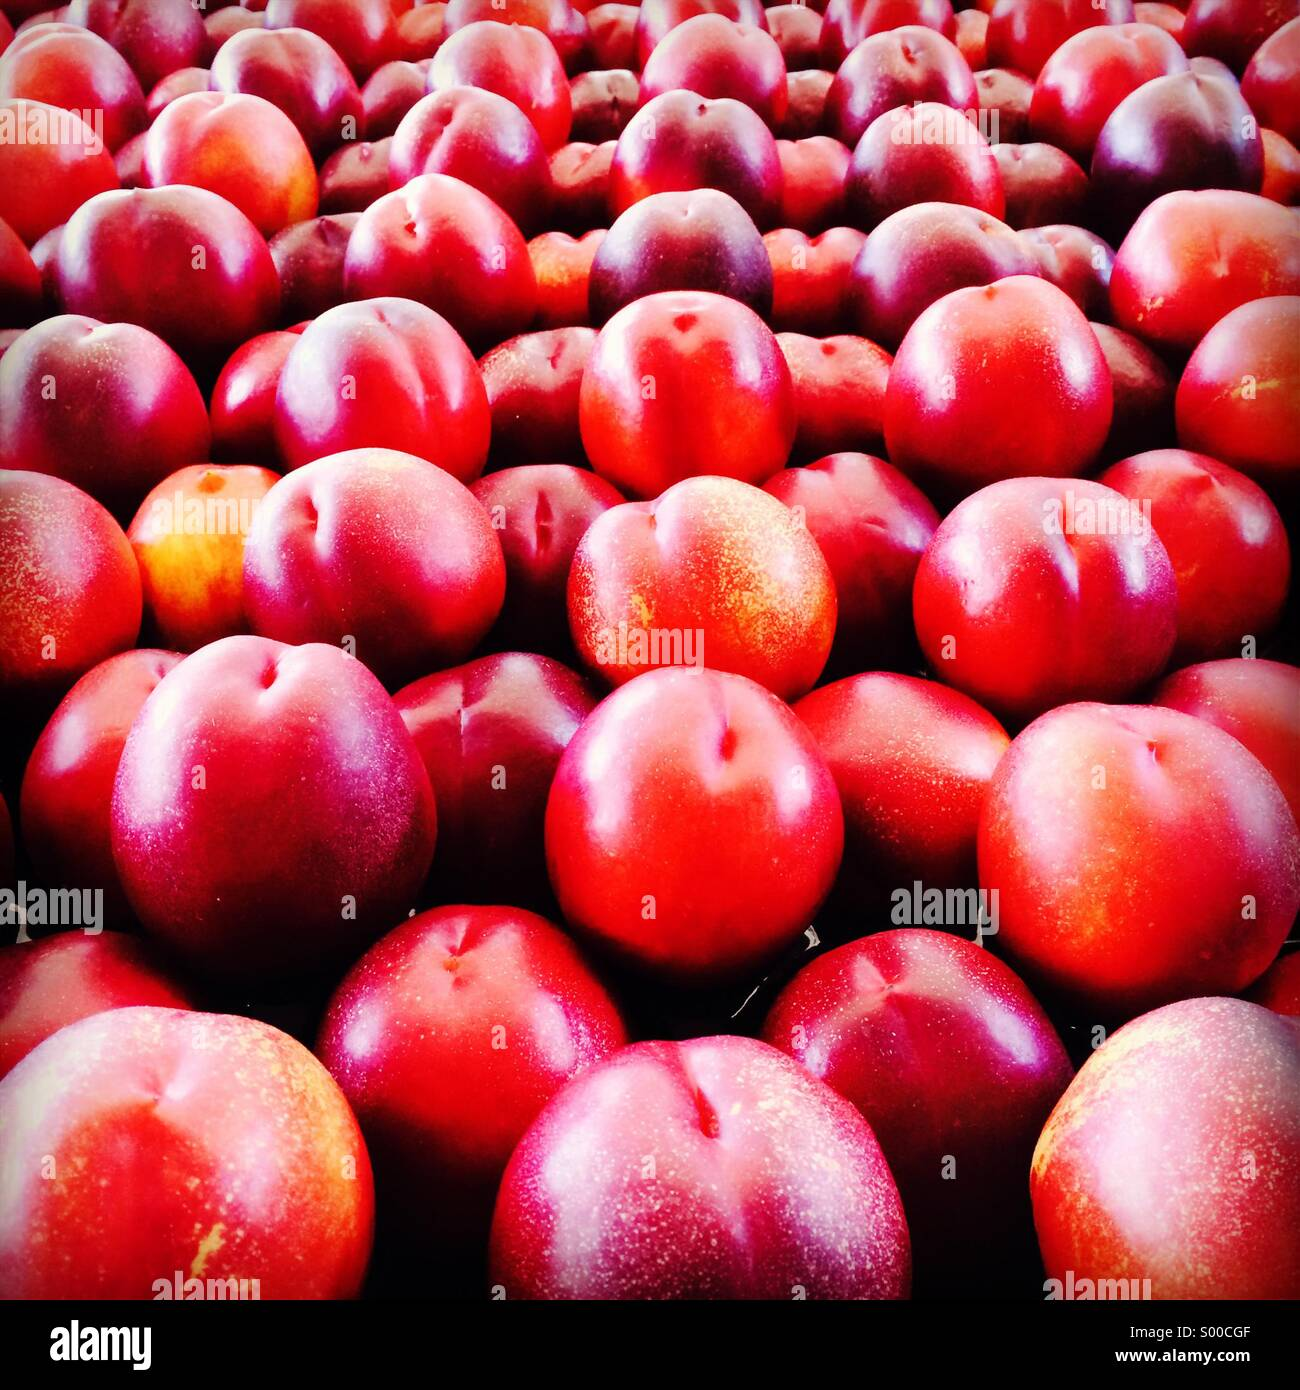 Rows and rows of plums - Stock Image